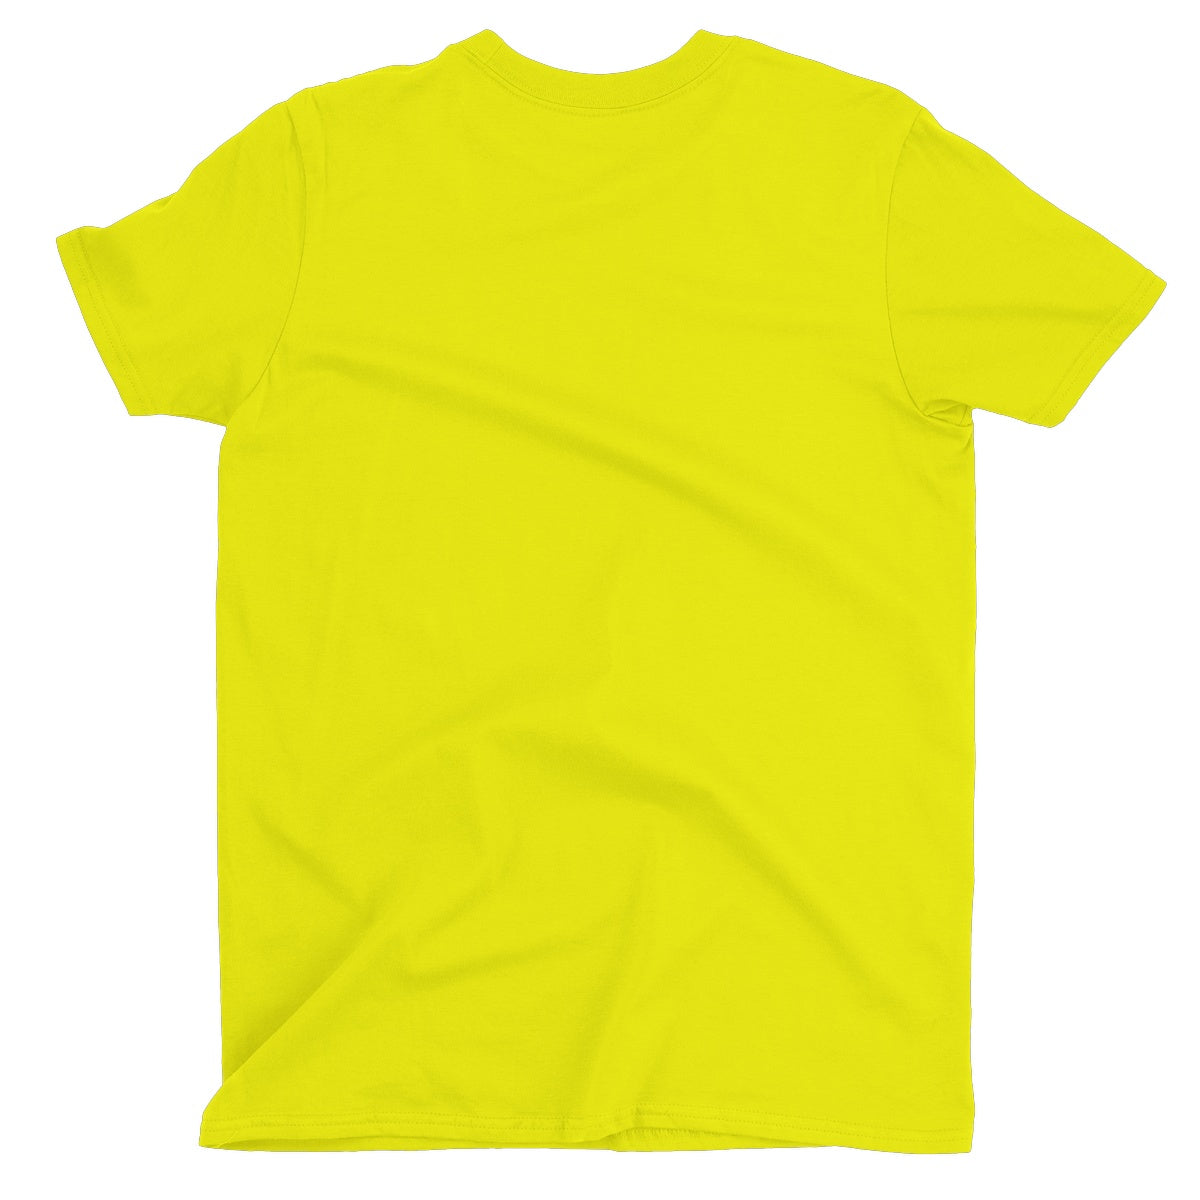 Storm in a Summer Field Unisex Neon T-Shirt